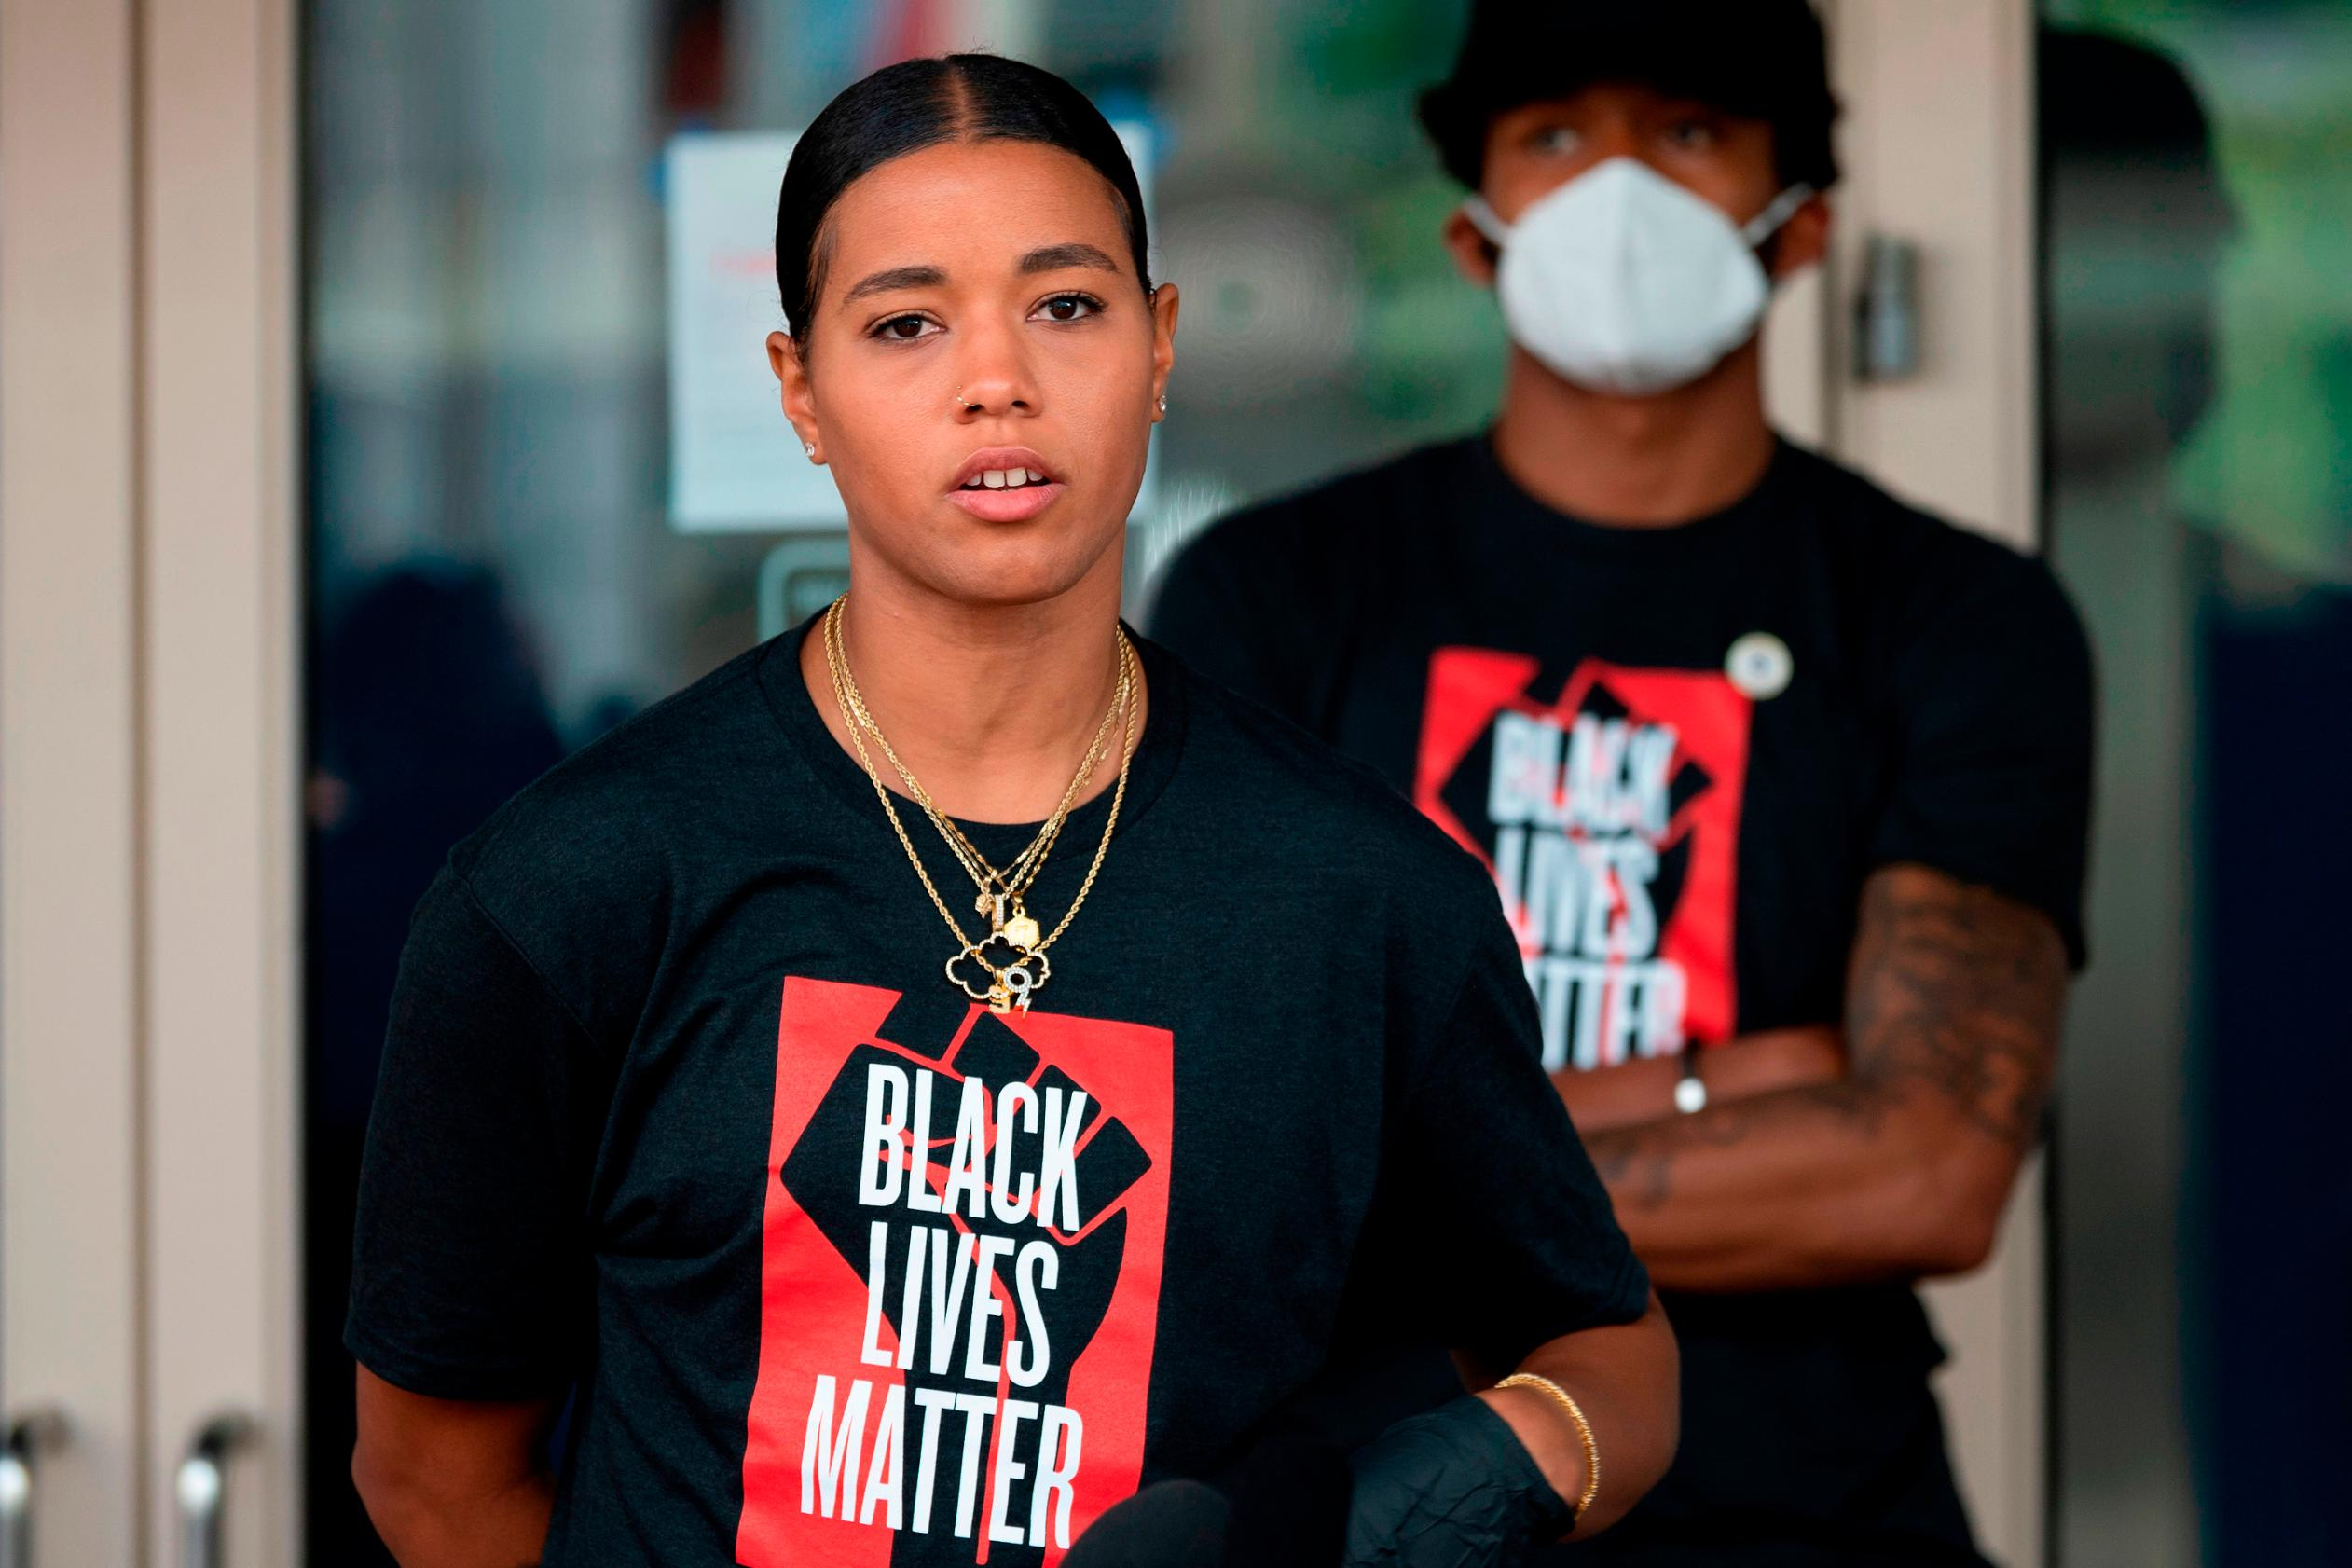 WNBA star Natasha Cloud says wearing Black Lives Matter T-shirts is 'not enough'